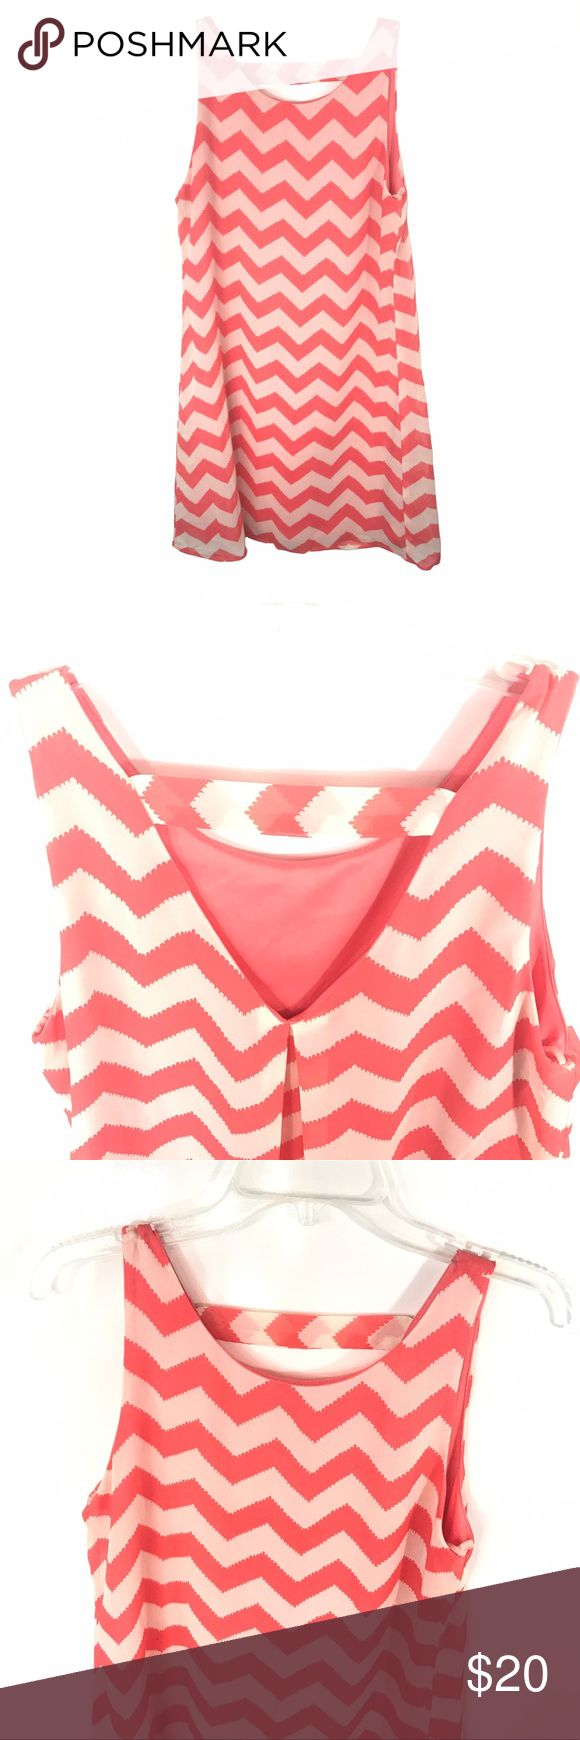 Zig zag flowy dress Coral and off white dress with zig zag design. Cut out in the back. Size small. Flowy. Dresses Midi